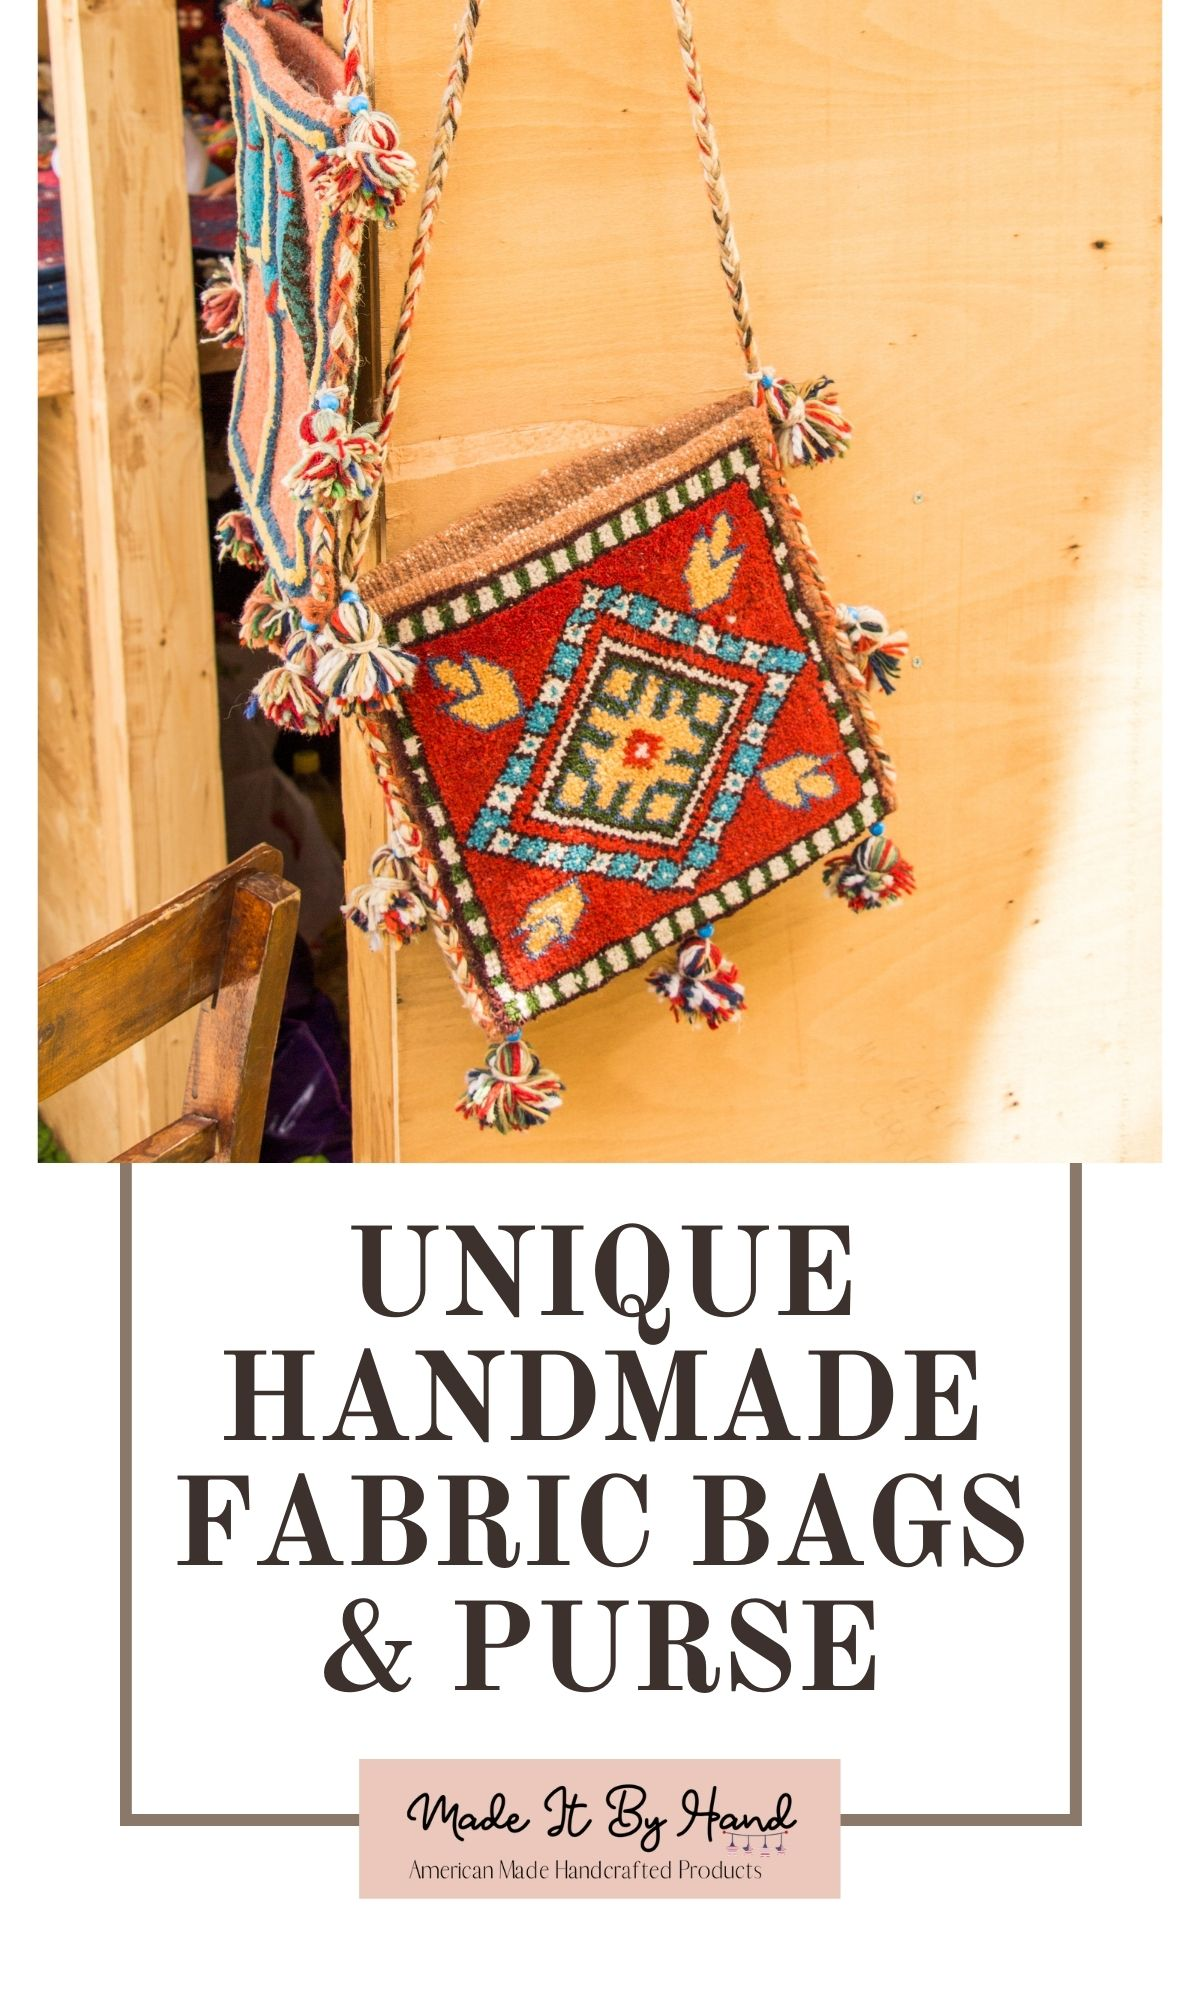 UNique handmade fabric bags and purses